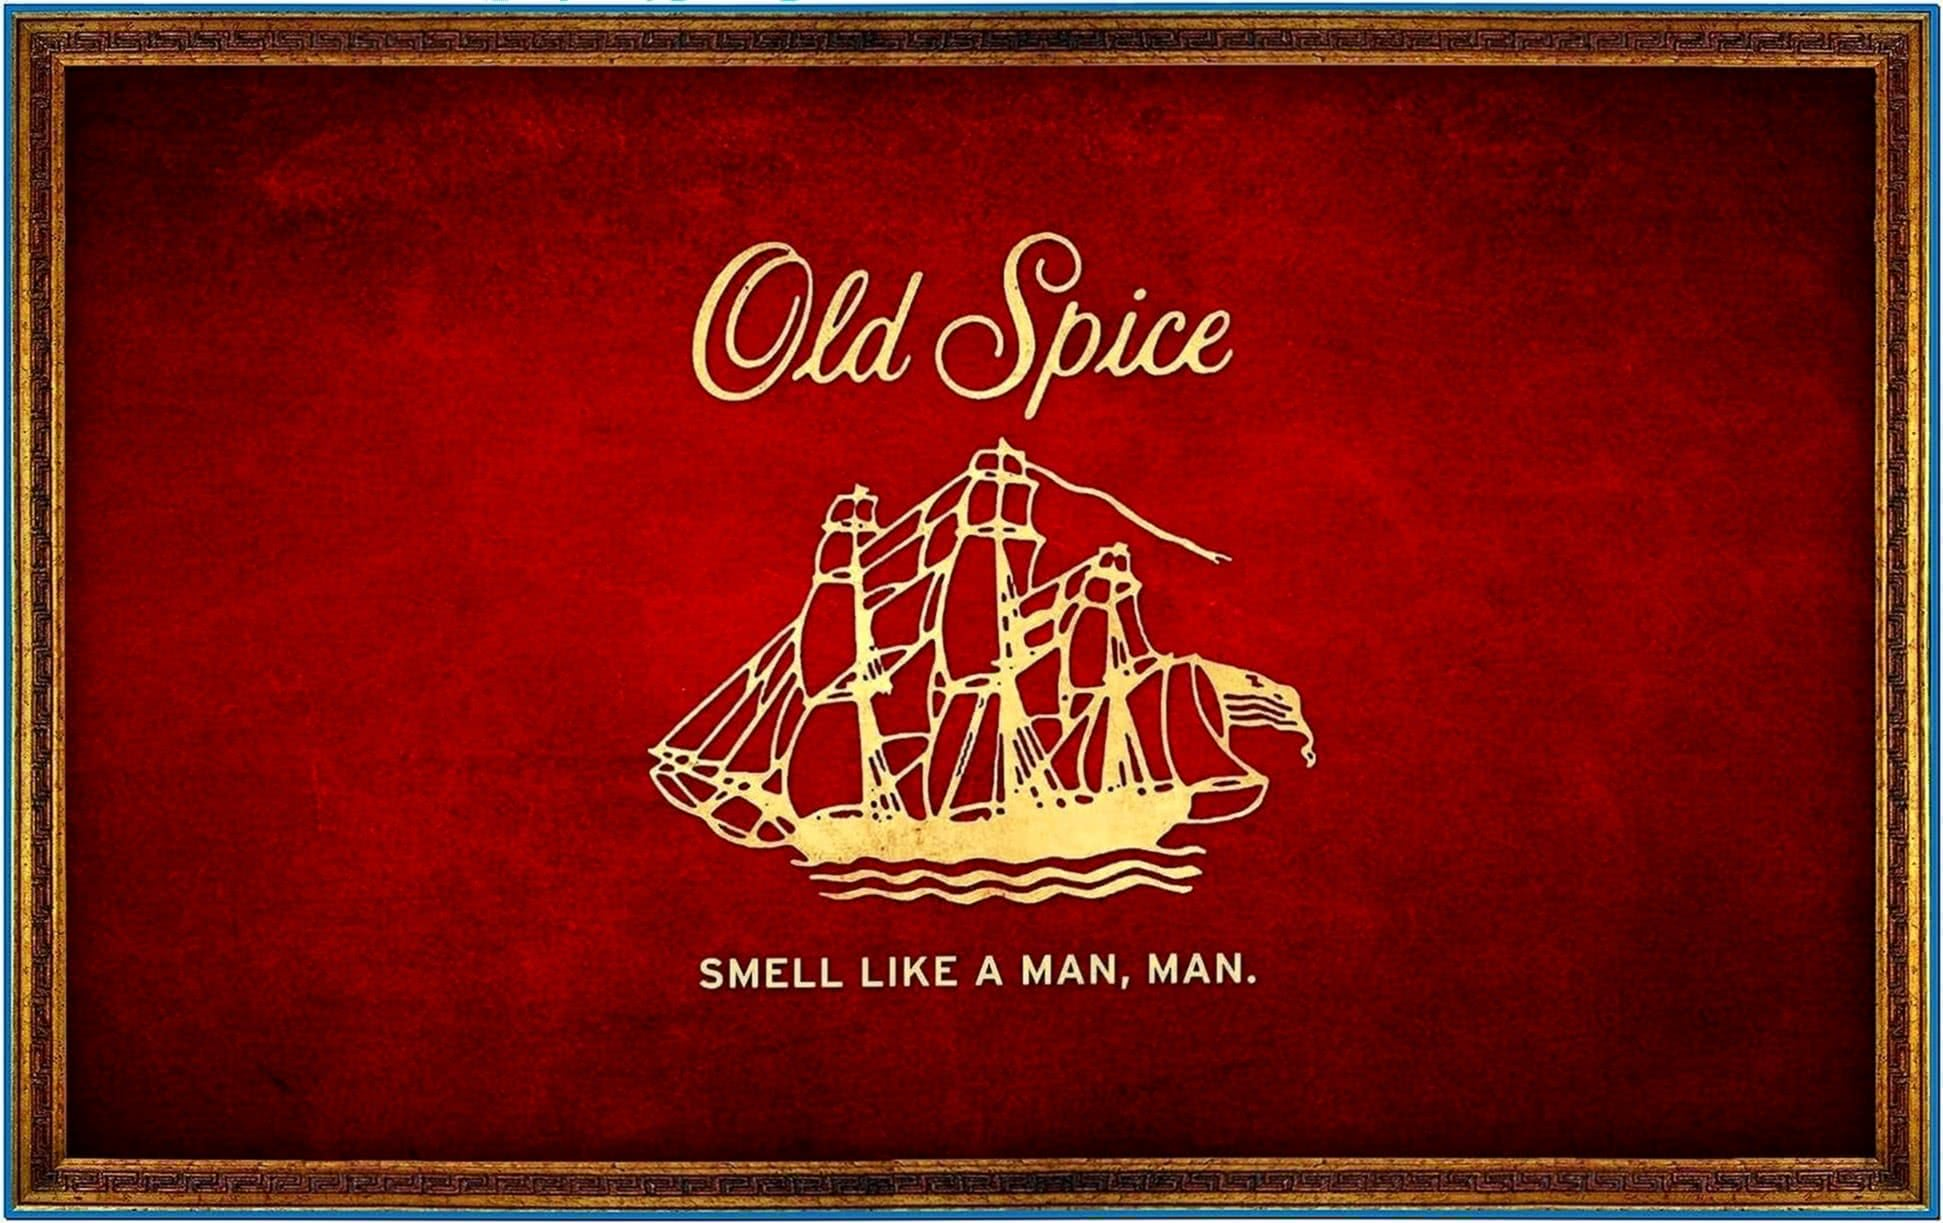 Spice Mobile Wallpaper Screensaver